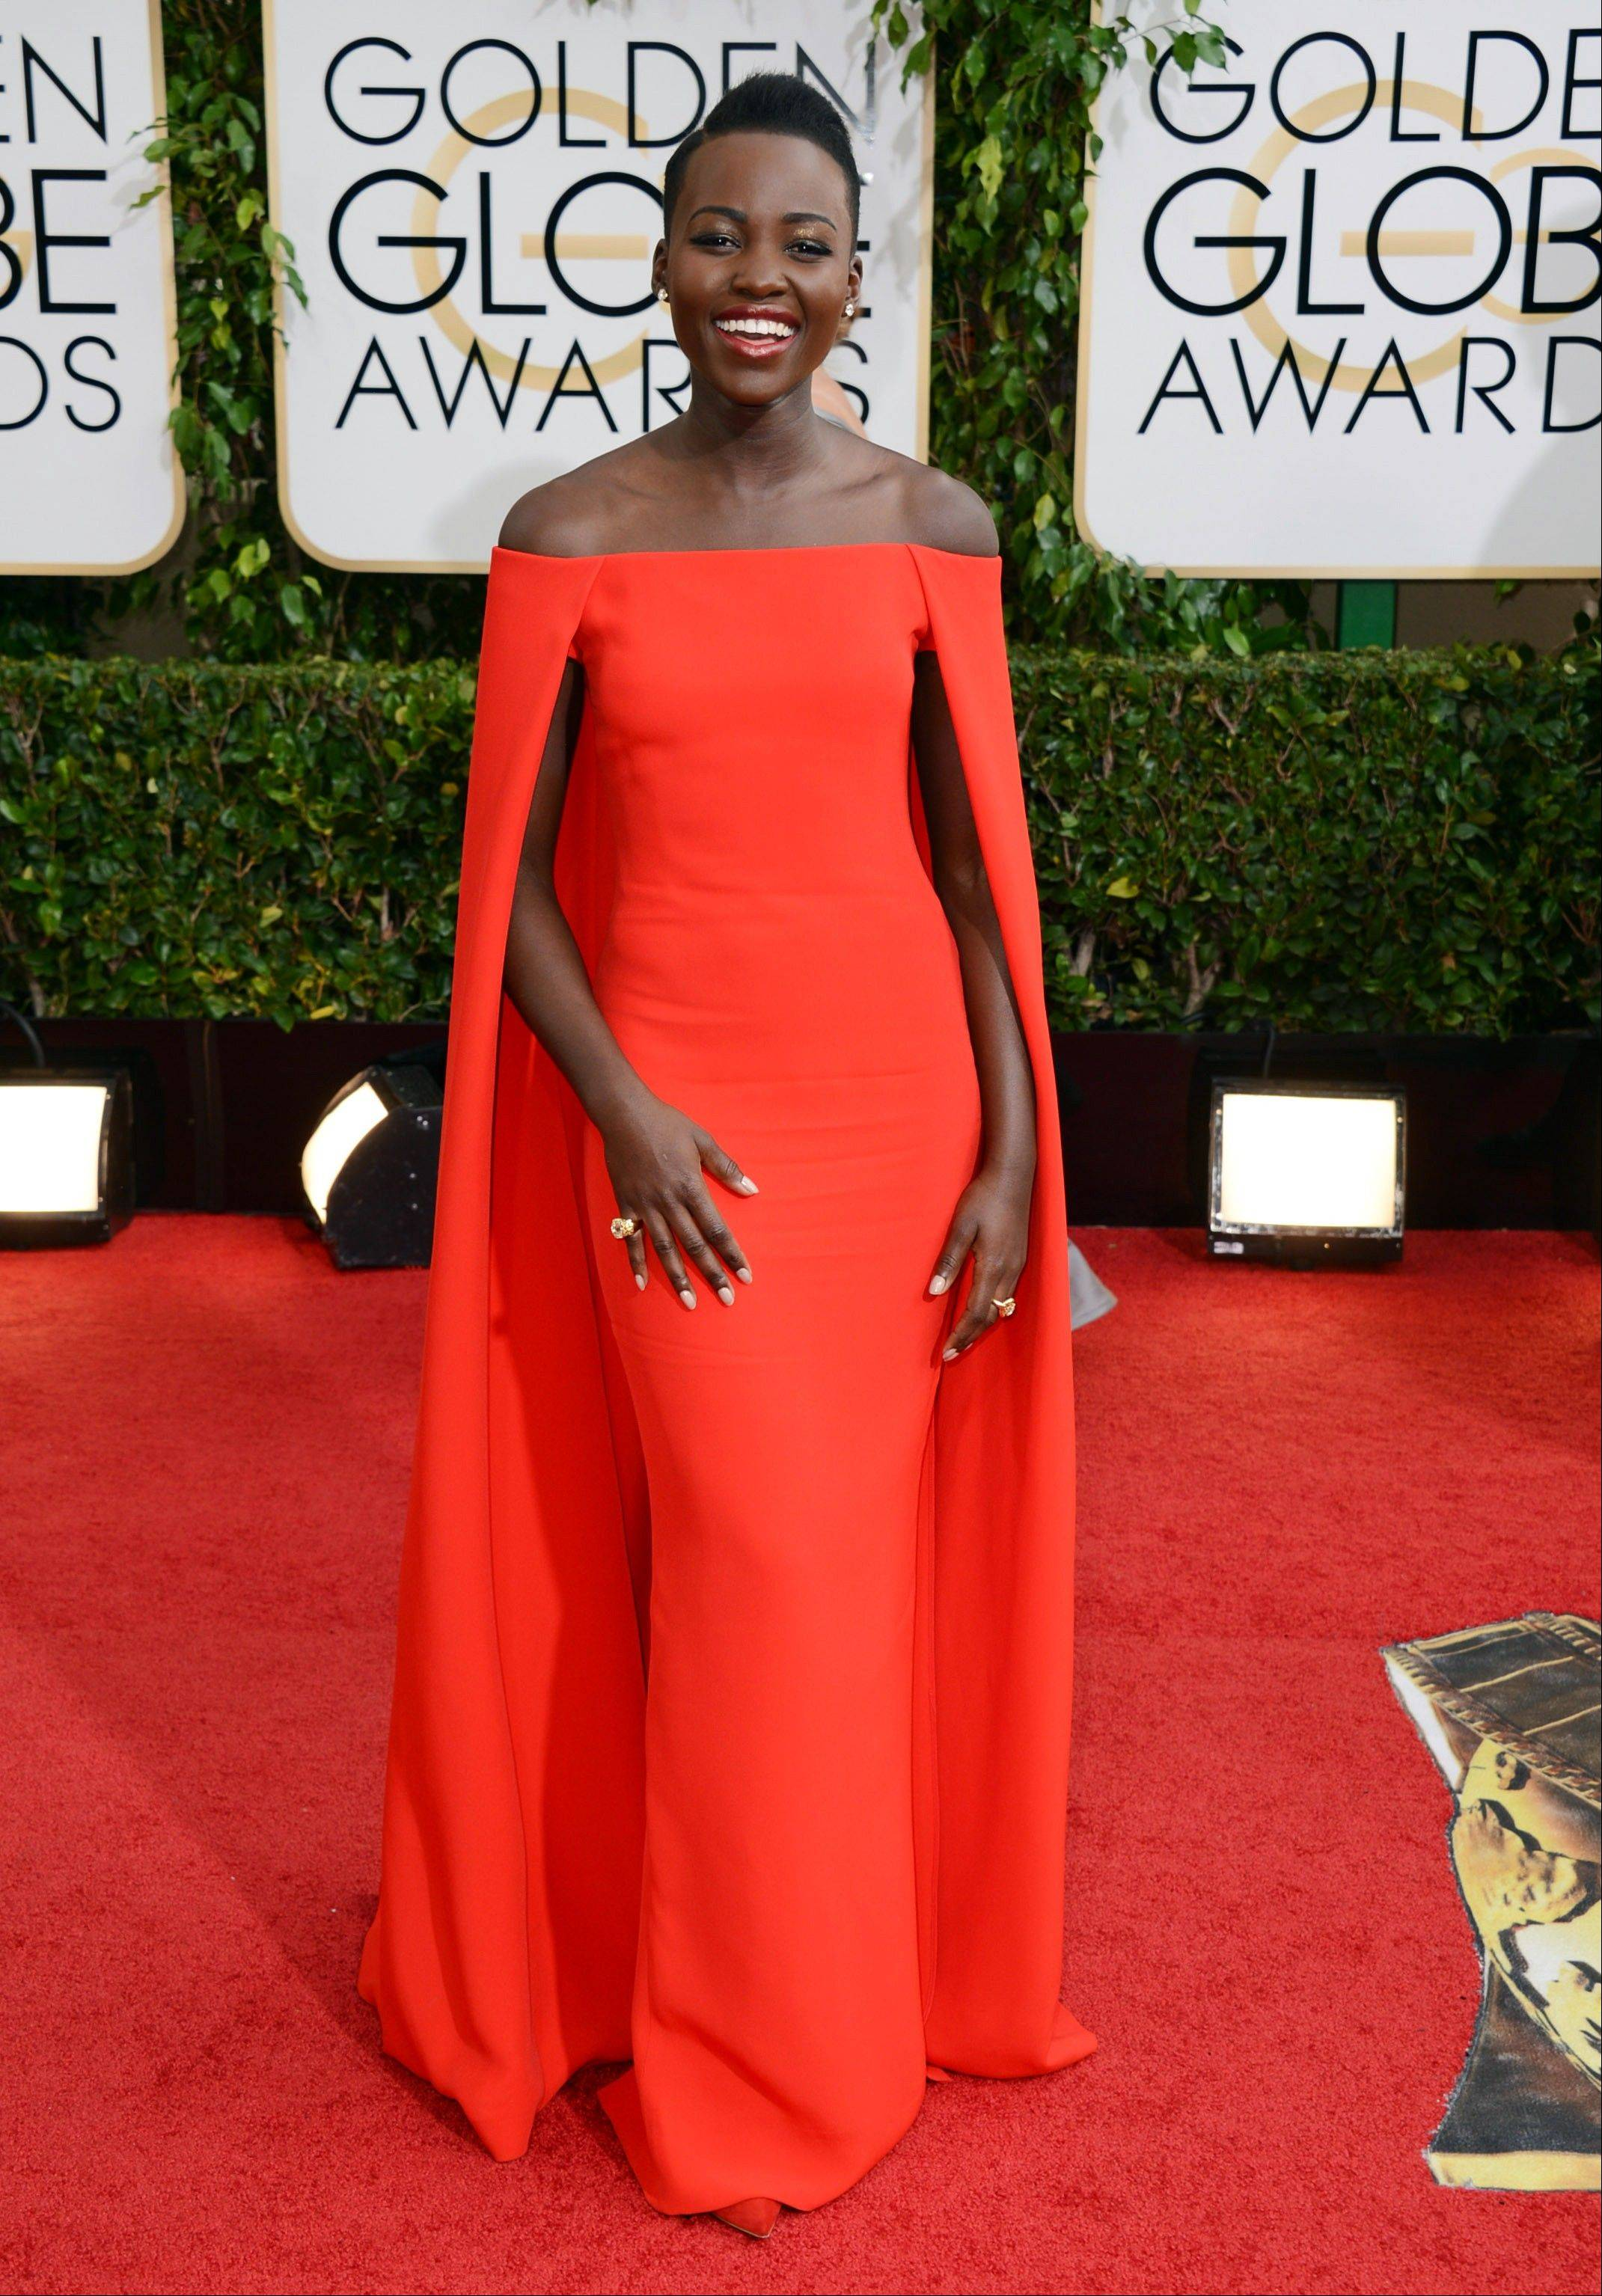 """12 Years a Slave"" star Lupita Nyong'o arrives at the 71st annual Golden Globe Awards."